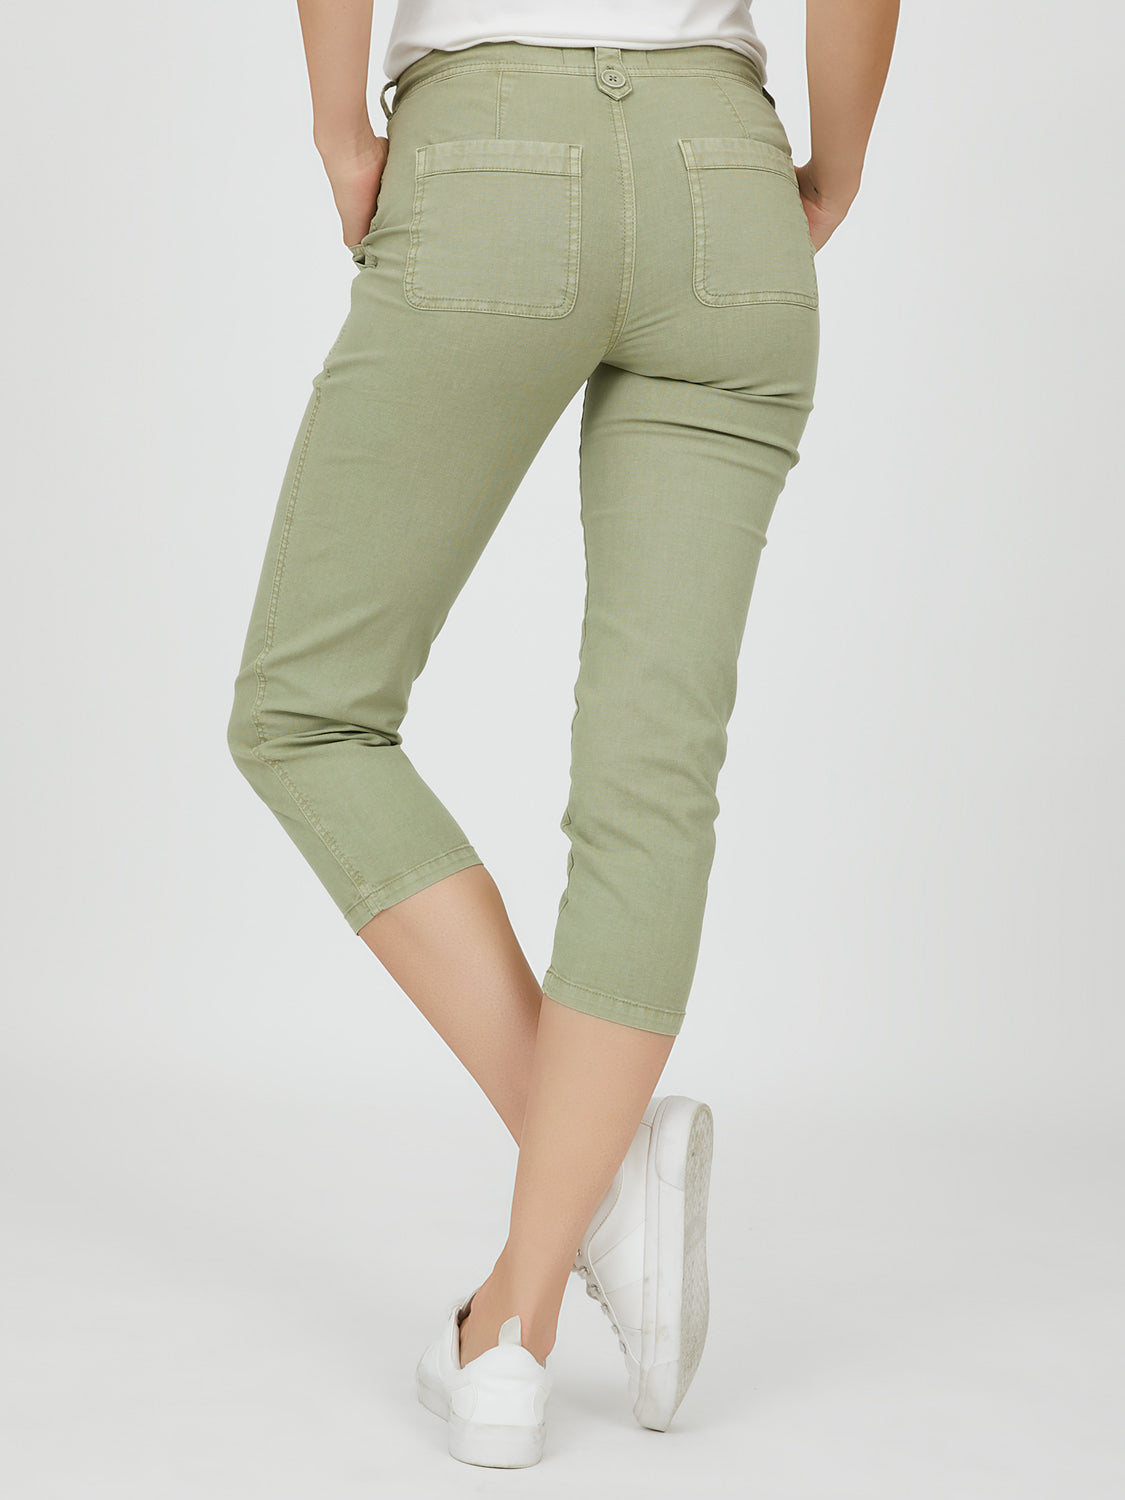 Slim Fit Capri Pant